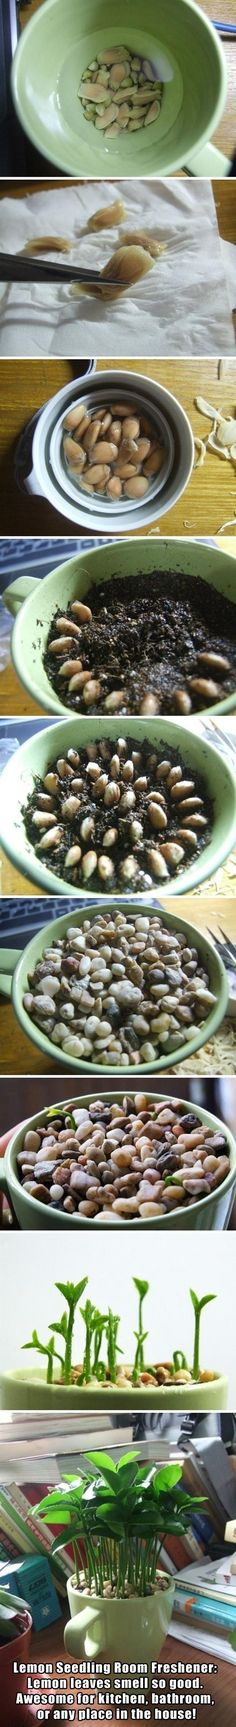 Small Plant Grown From Lemon Seeds. 1. Soak lemons seeds overnight 2. Gently remove outer layer of seeds 3. Put back into water as you prepare soil. 4. Plant lemon seeds in a circle pattern. 5. Place small pebbles on top of seeds 6. Water occasionally and watch it grow.